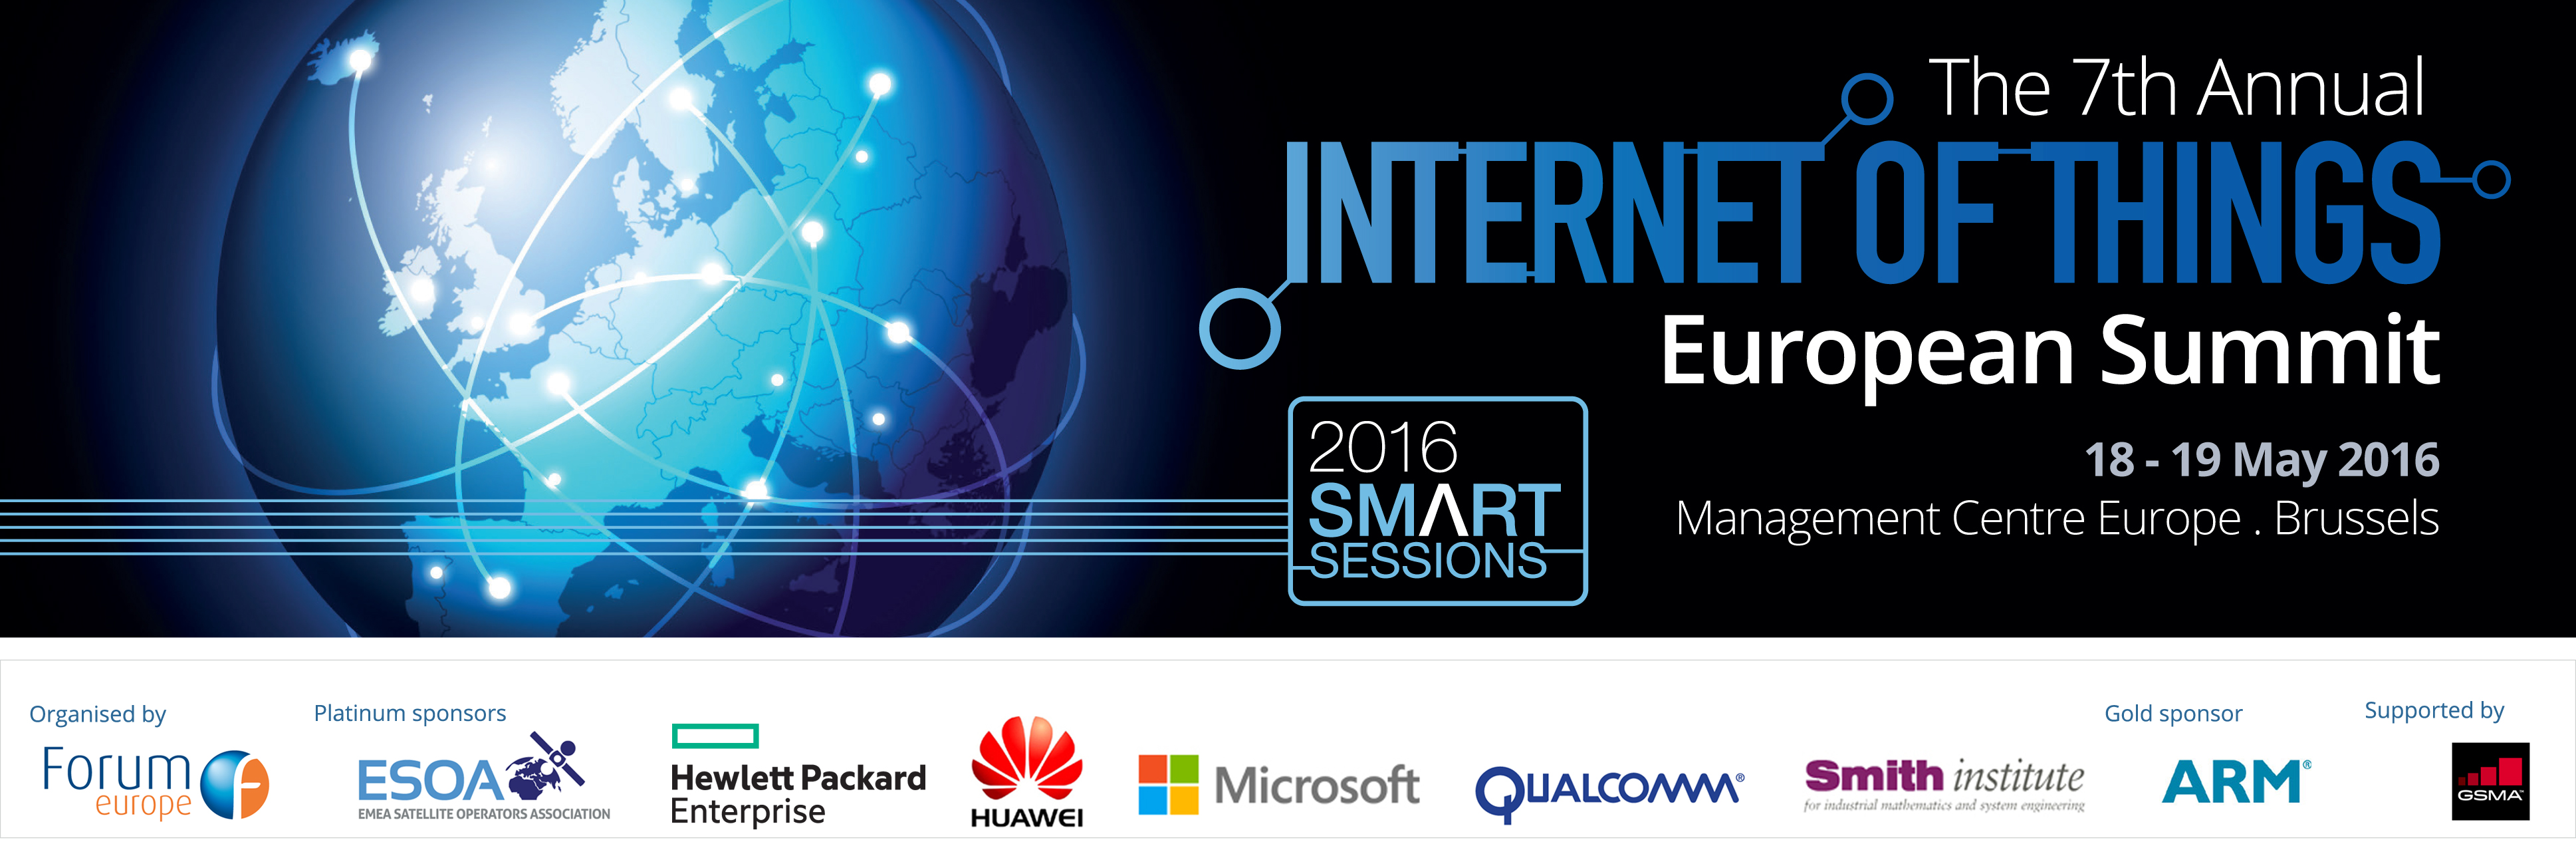 The 7th Annual Internet of Things European Summit | Speaker